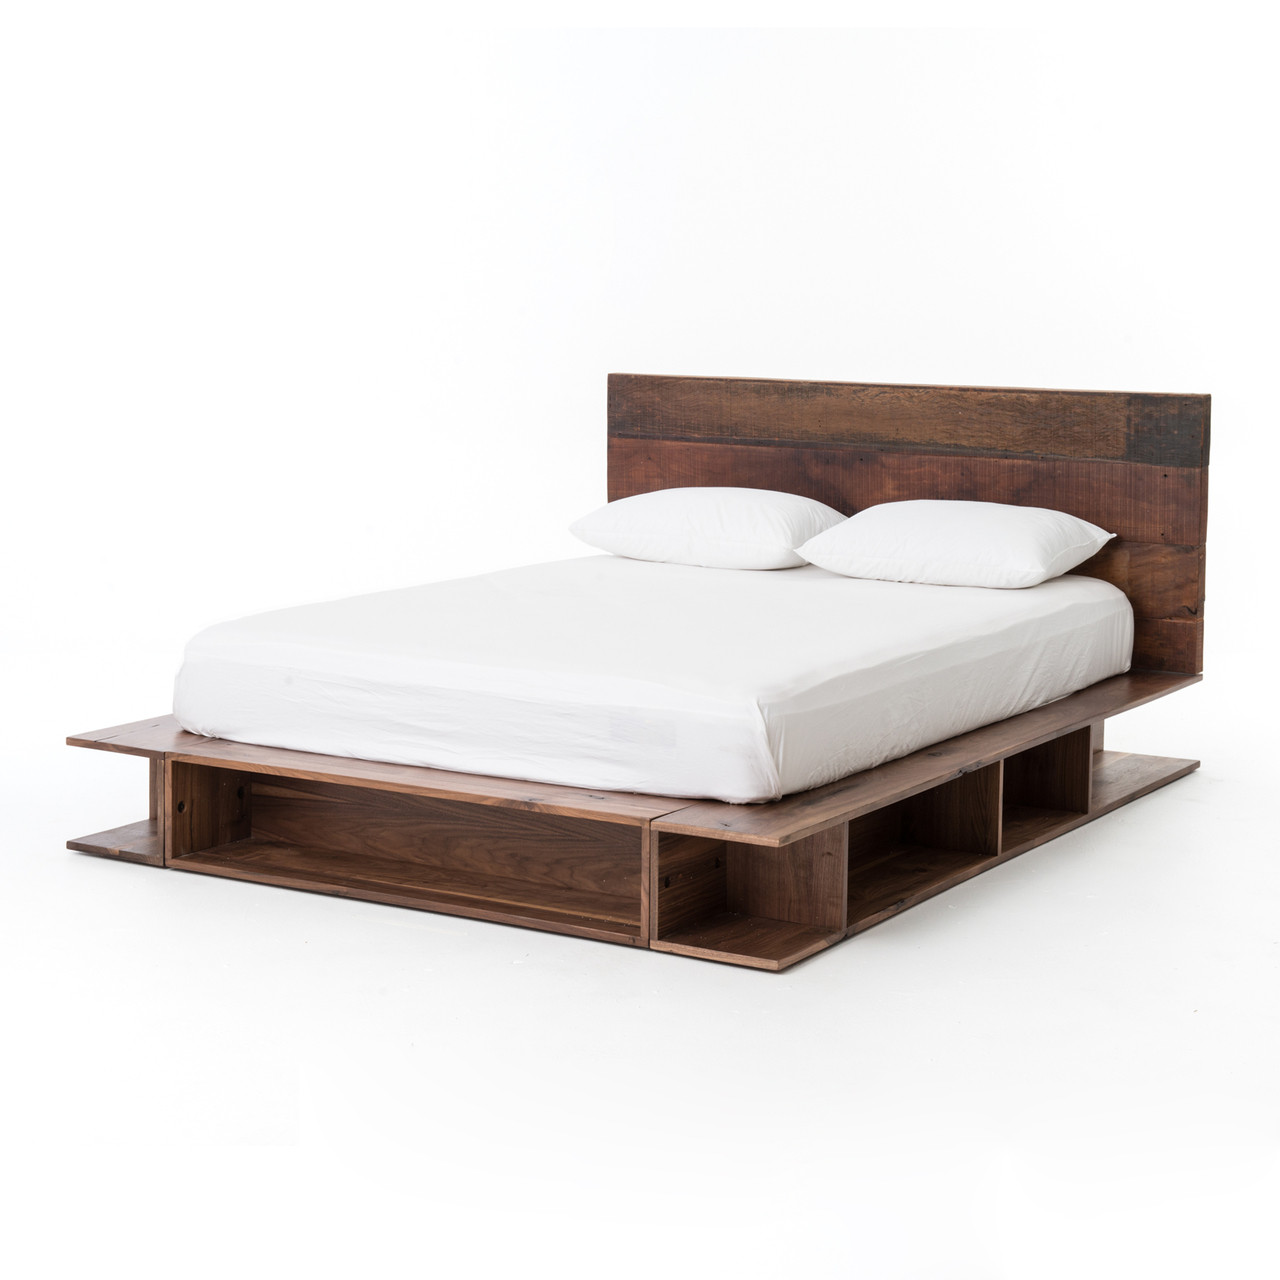 bonnie rustic reclaimed wood king platform bed frame zin home. Black Bedroom Furniture Sets. Home Design Ideas